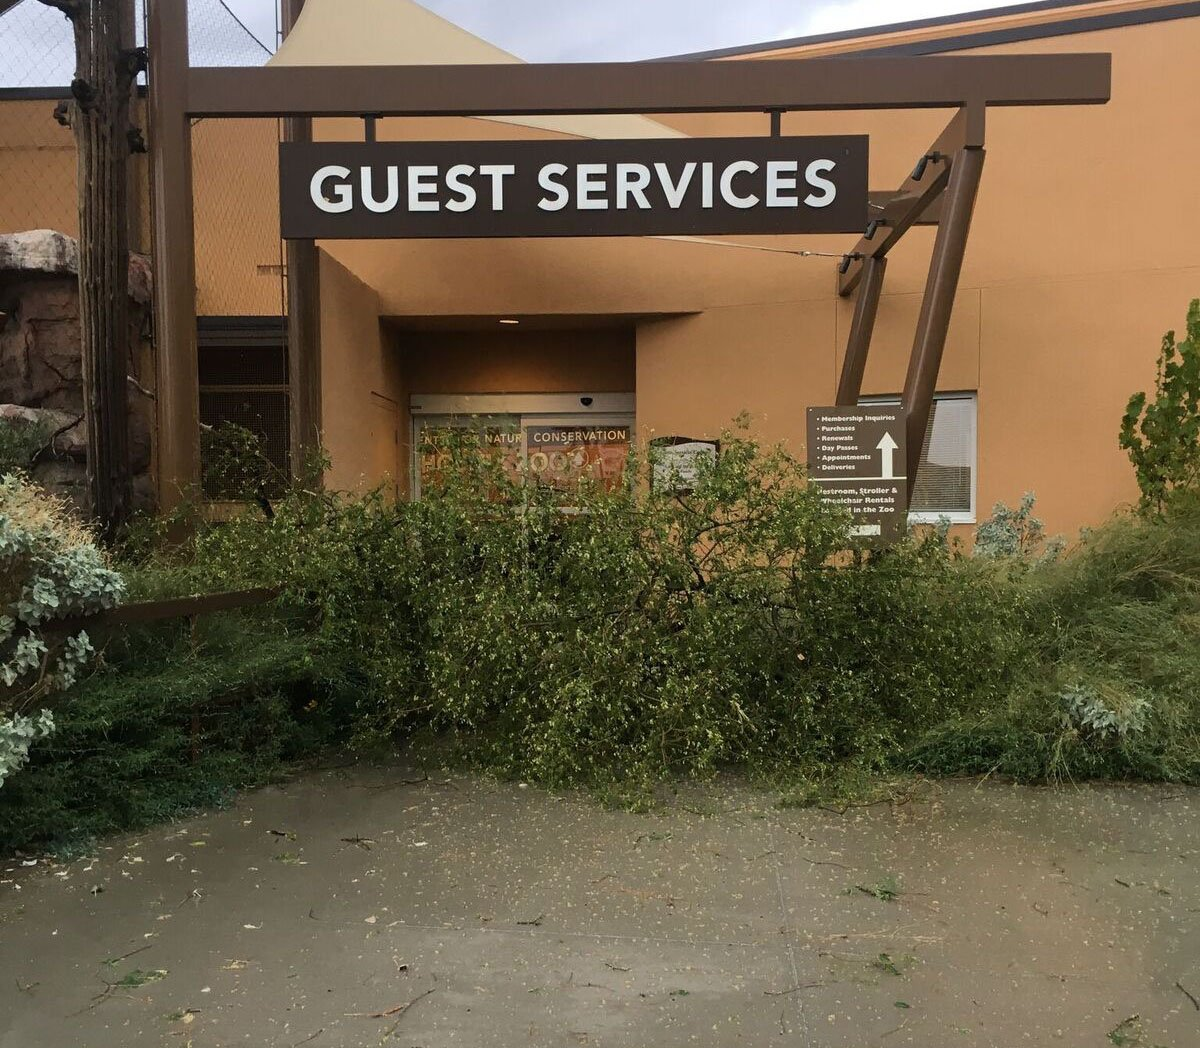 The Phoenix Zoo said for the safety of the animals, guests and staff, they will have to close the zoo while they clean up and repair the storm damage. (Source: Phoenix Zoo)